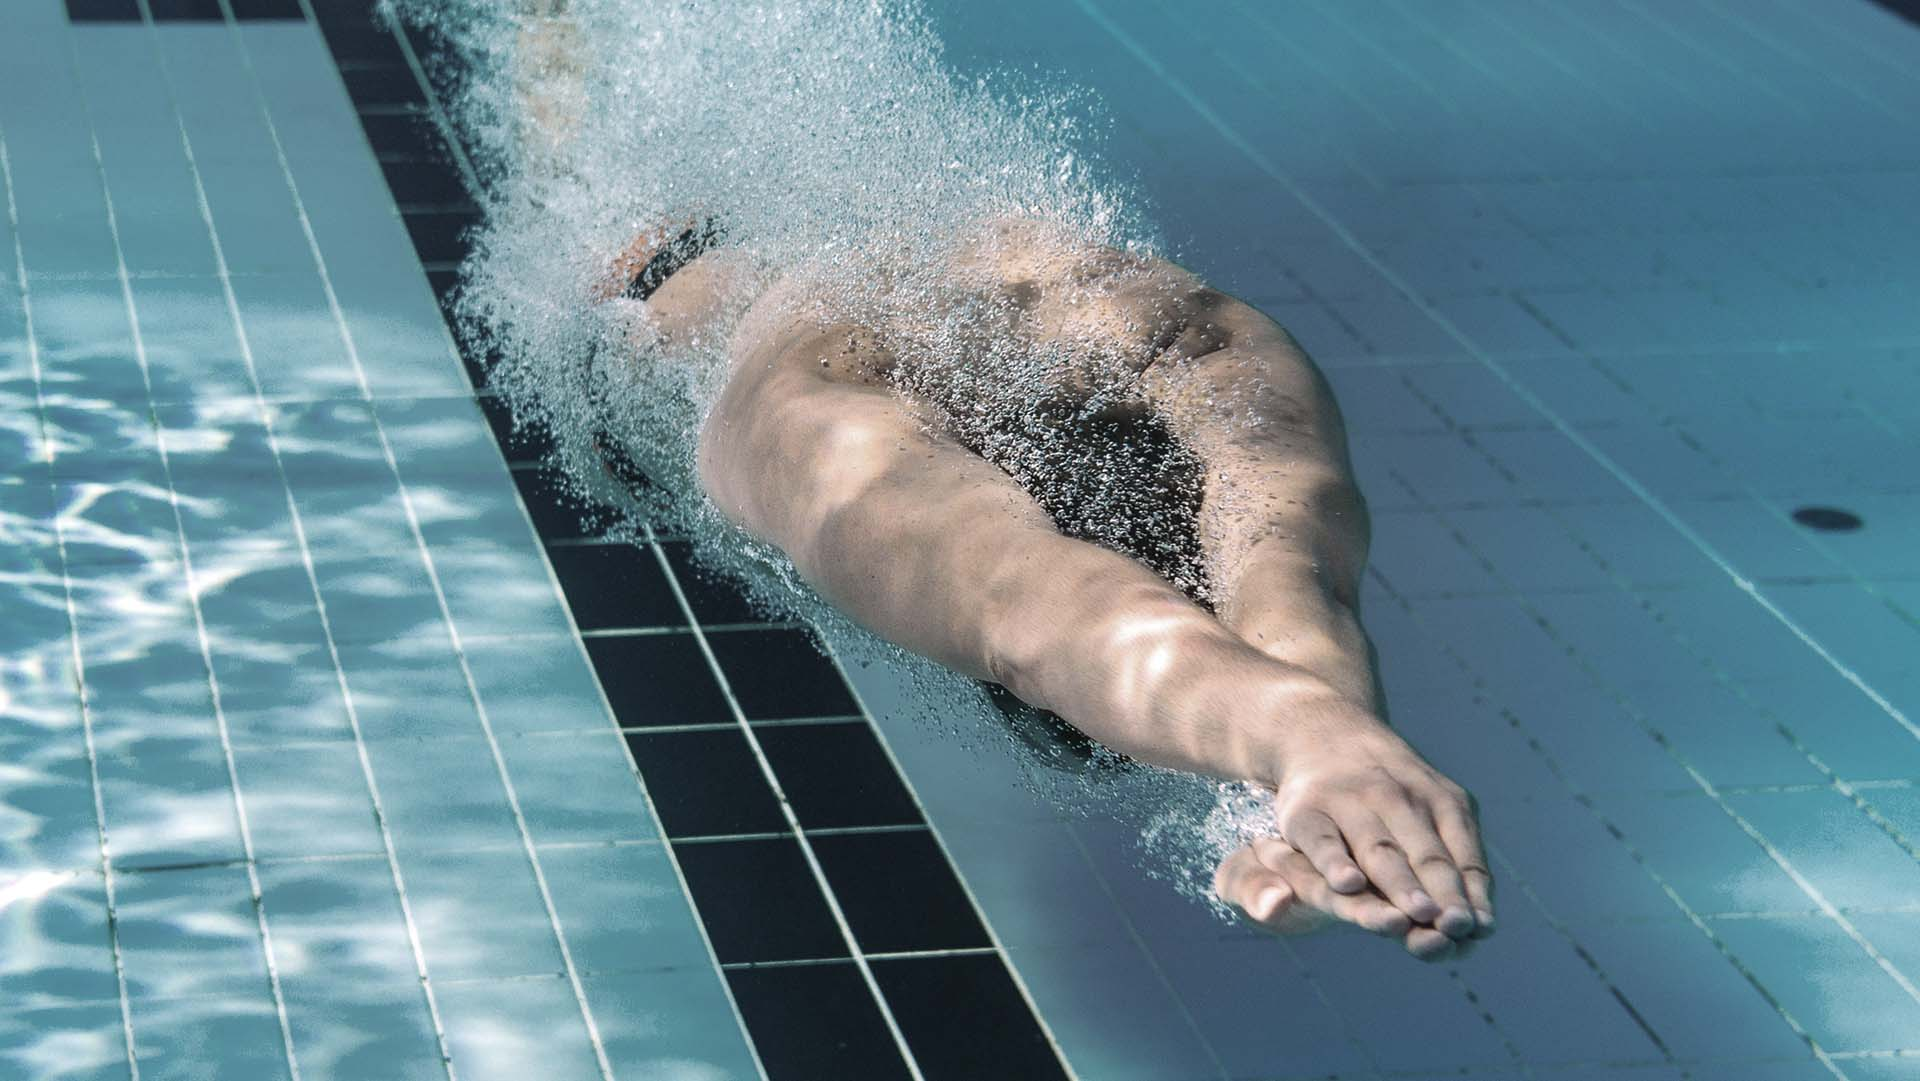 Male swimmer propelling underwater in the swimming pool